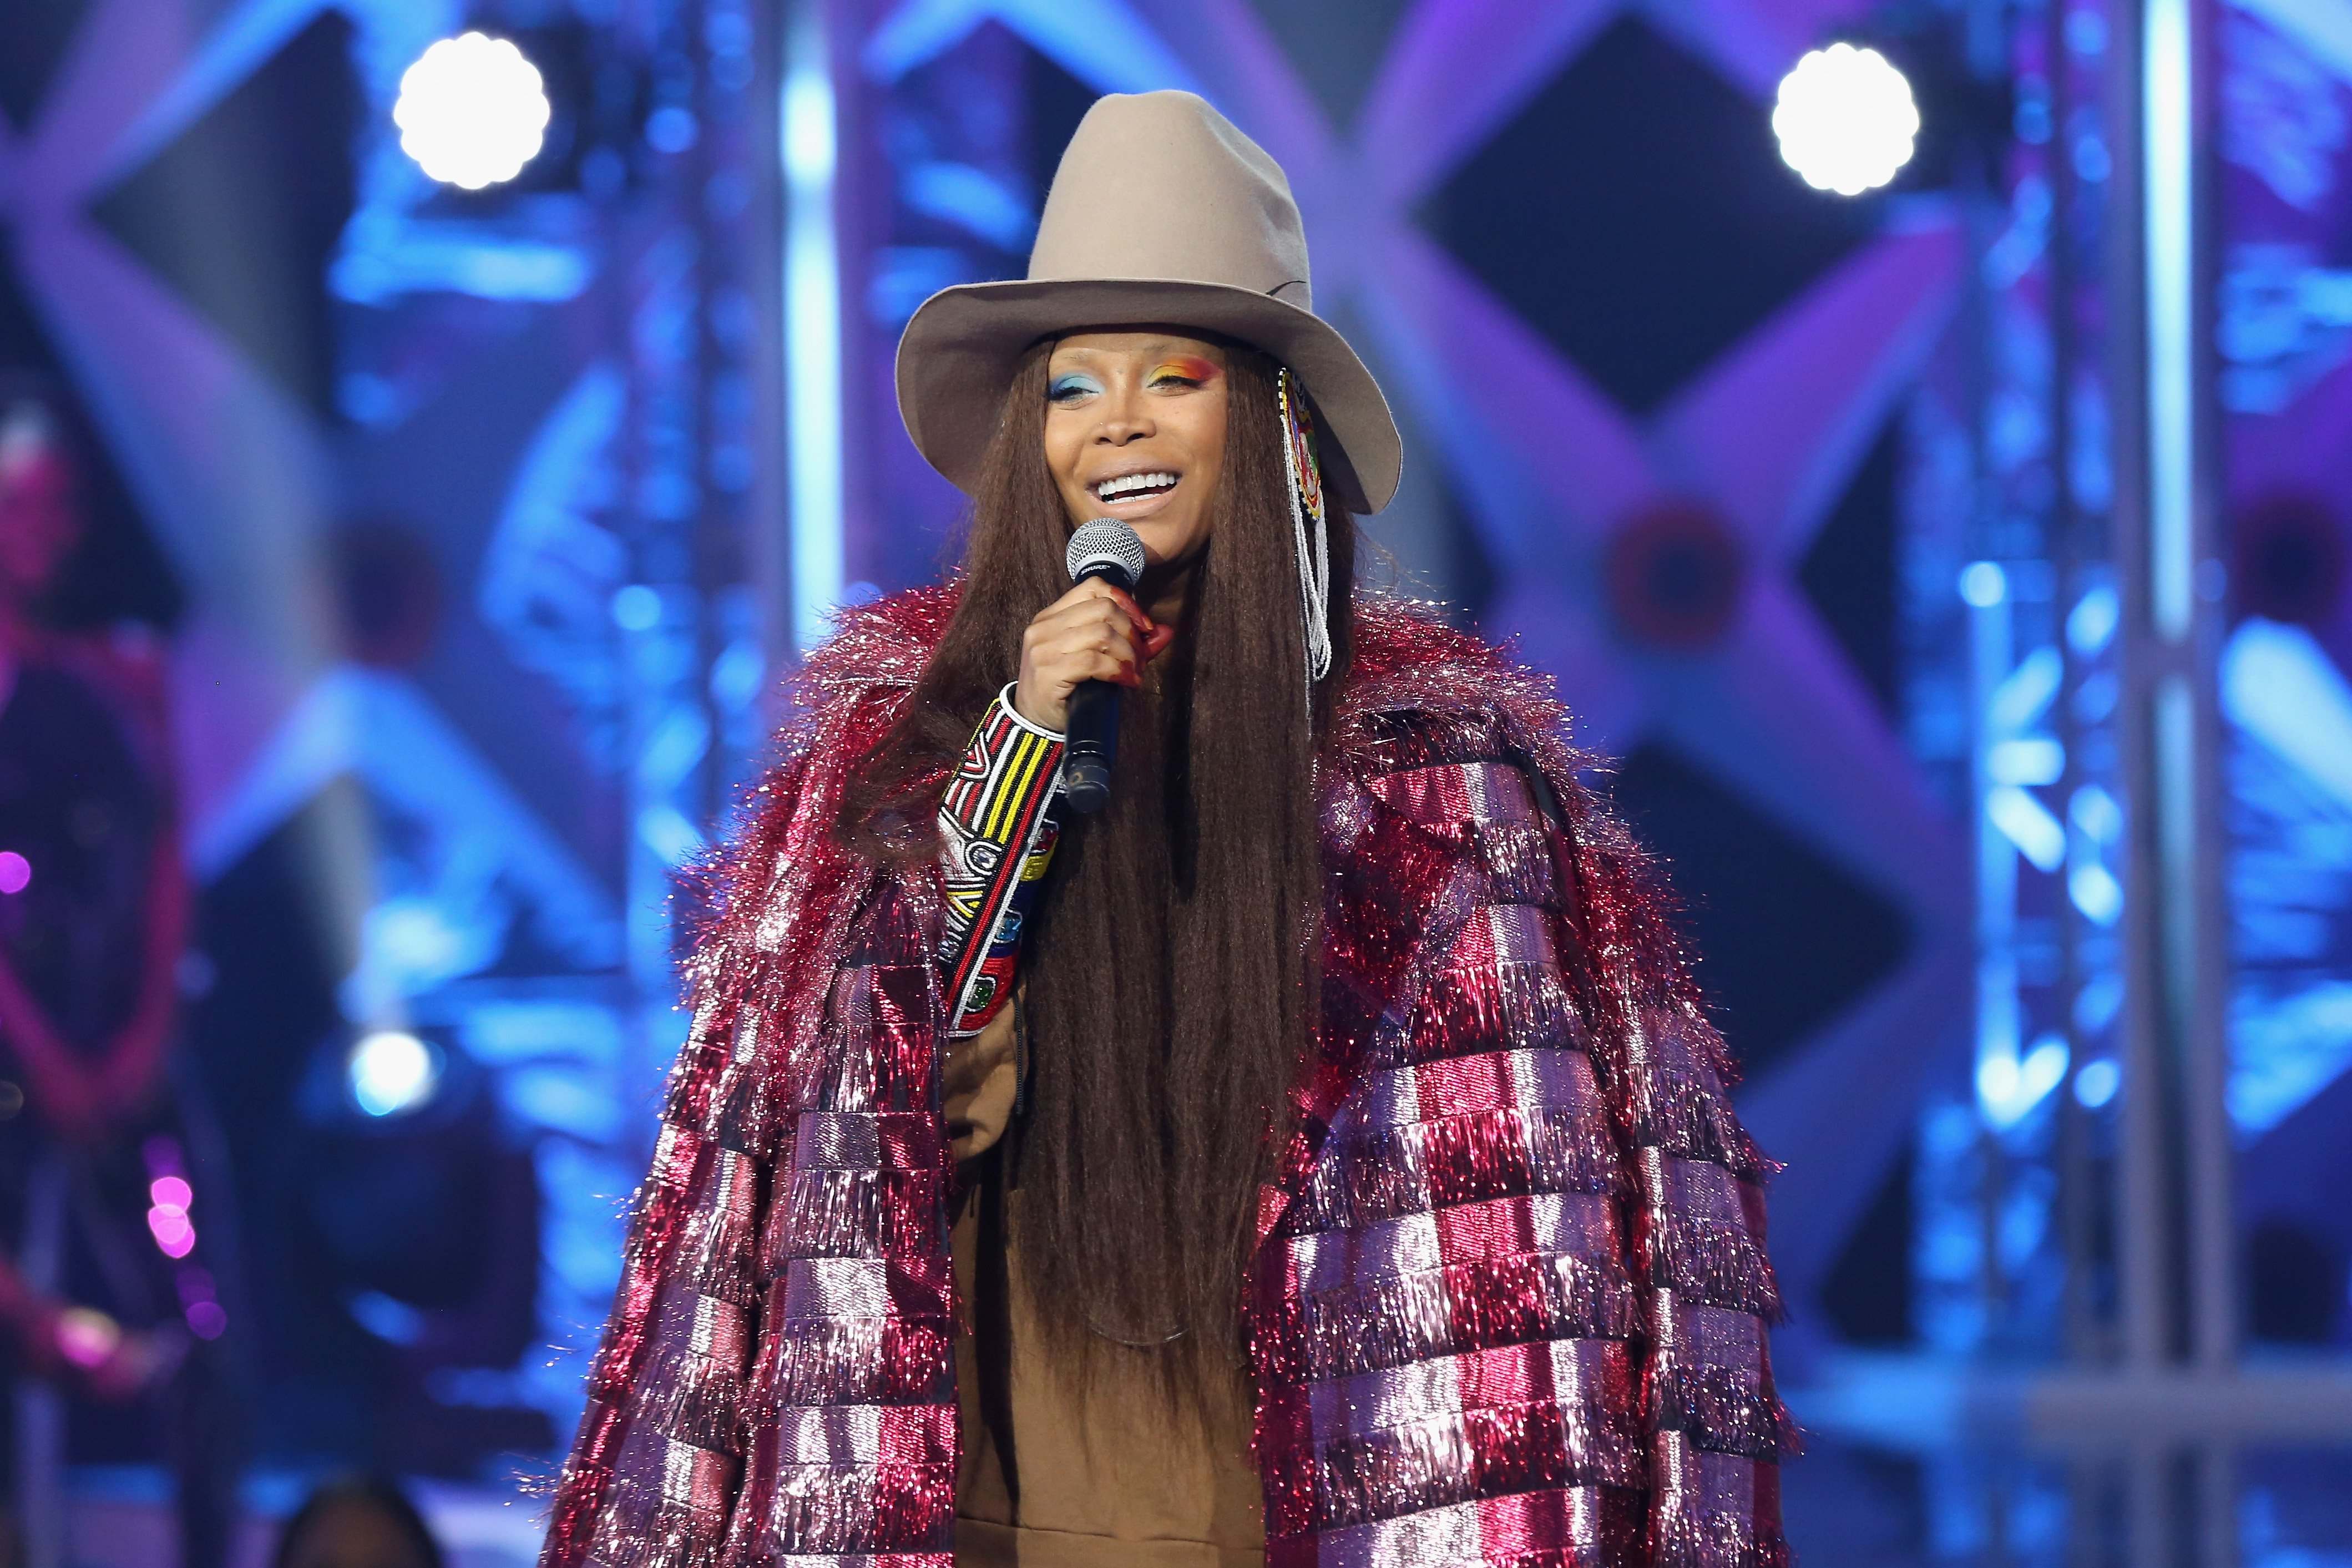 Erykah Badu at the BET's Social Awards 2018 on February 11, 2018 in Atlanta, Georgia. | Photo: Getty Images